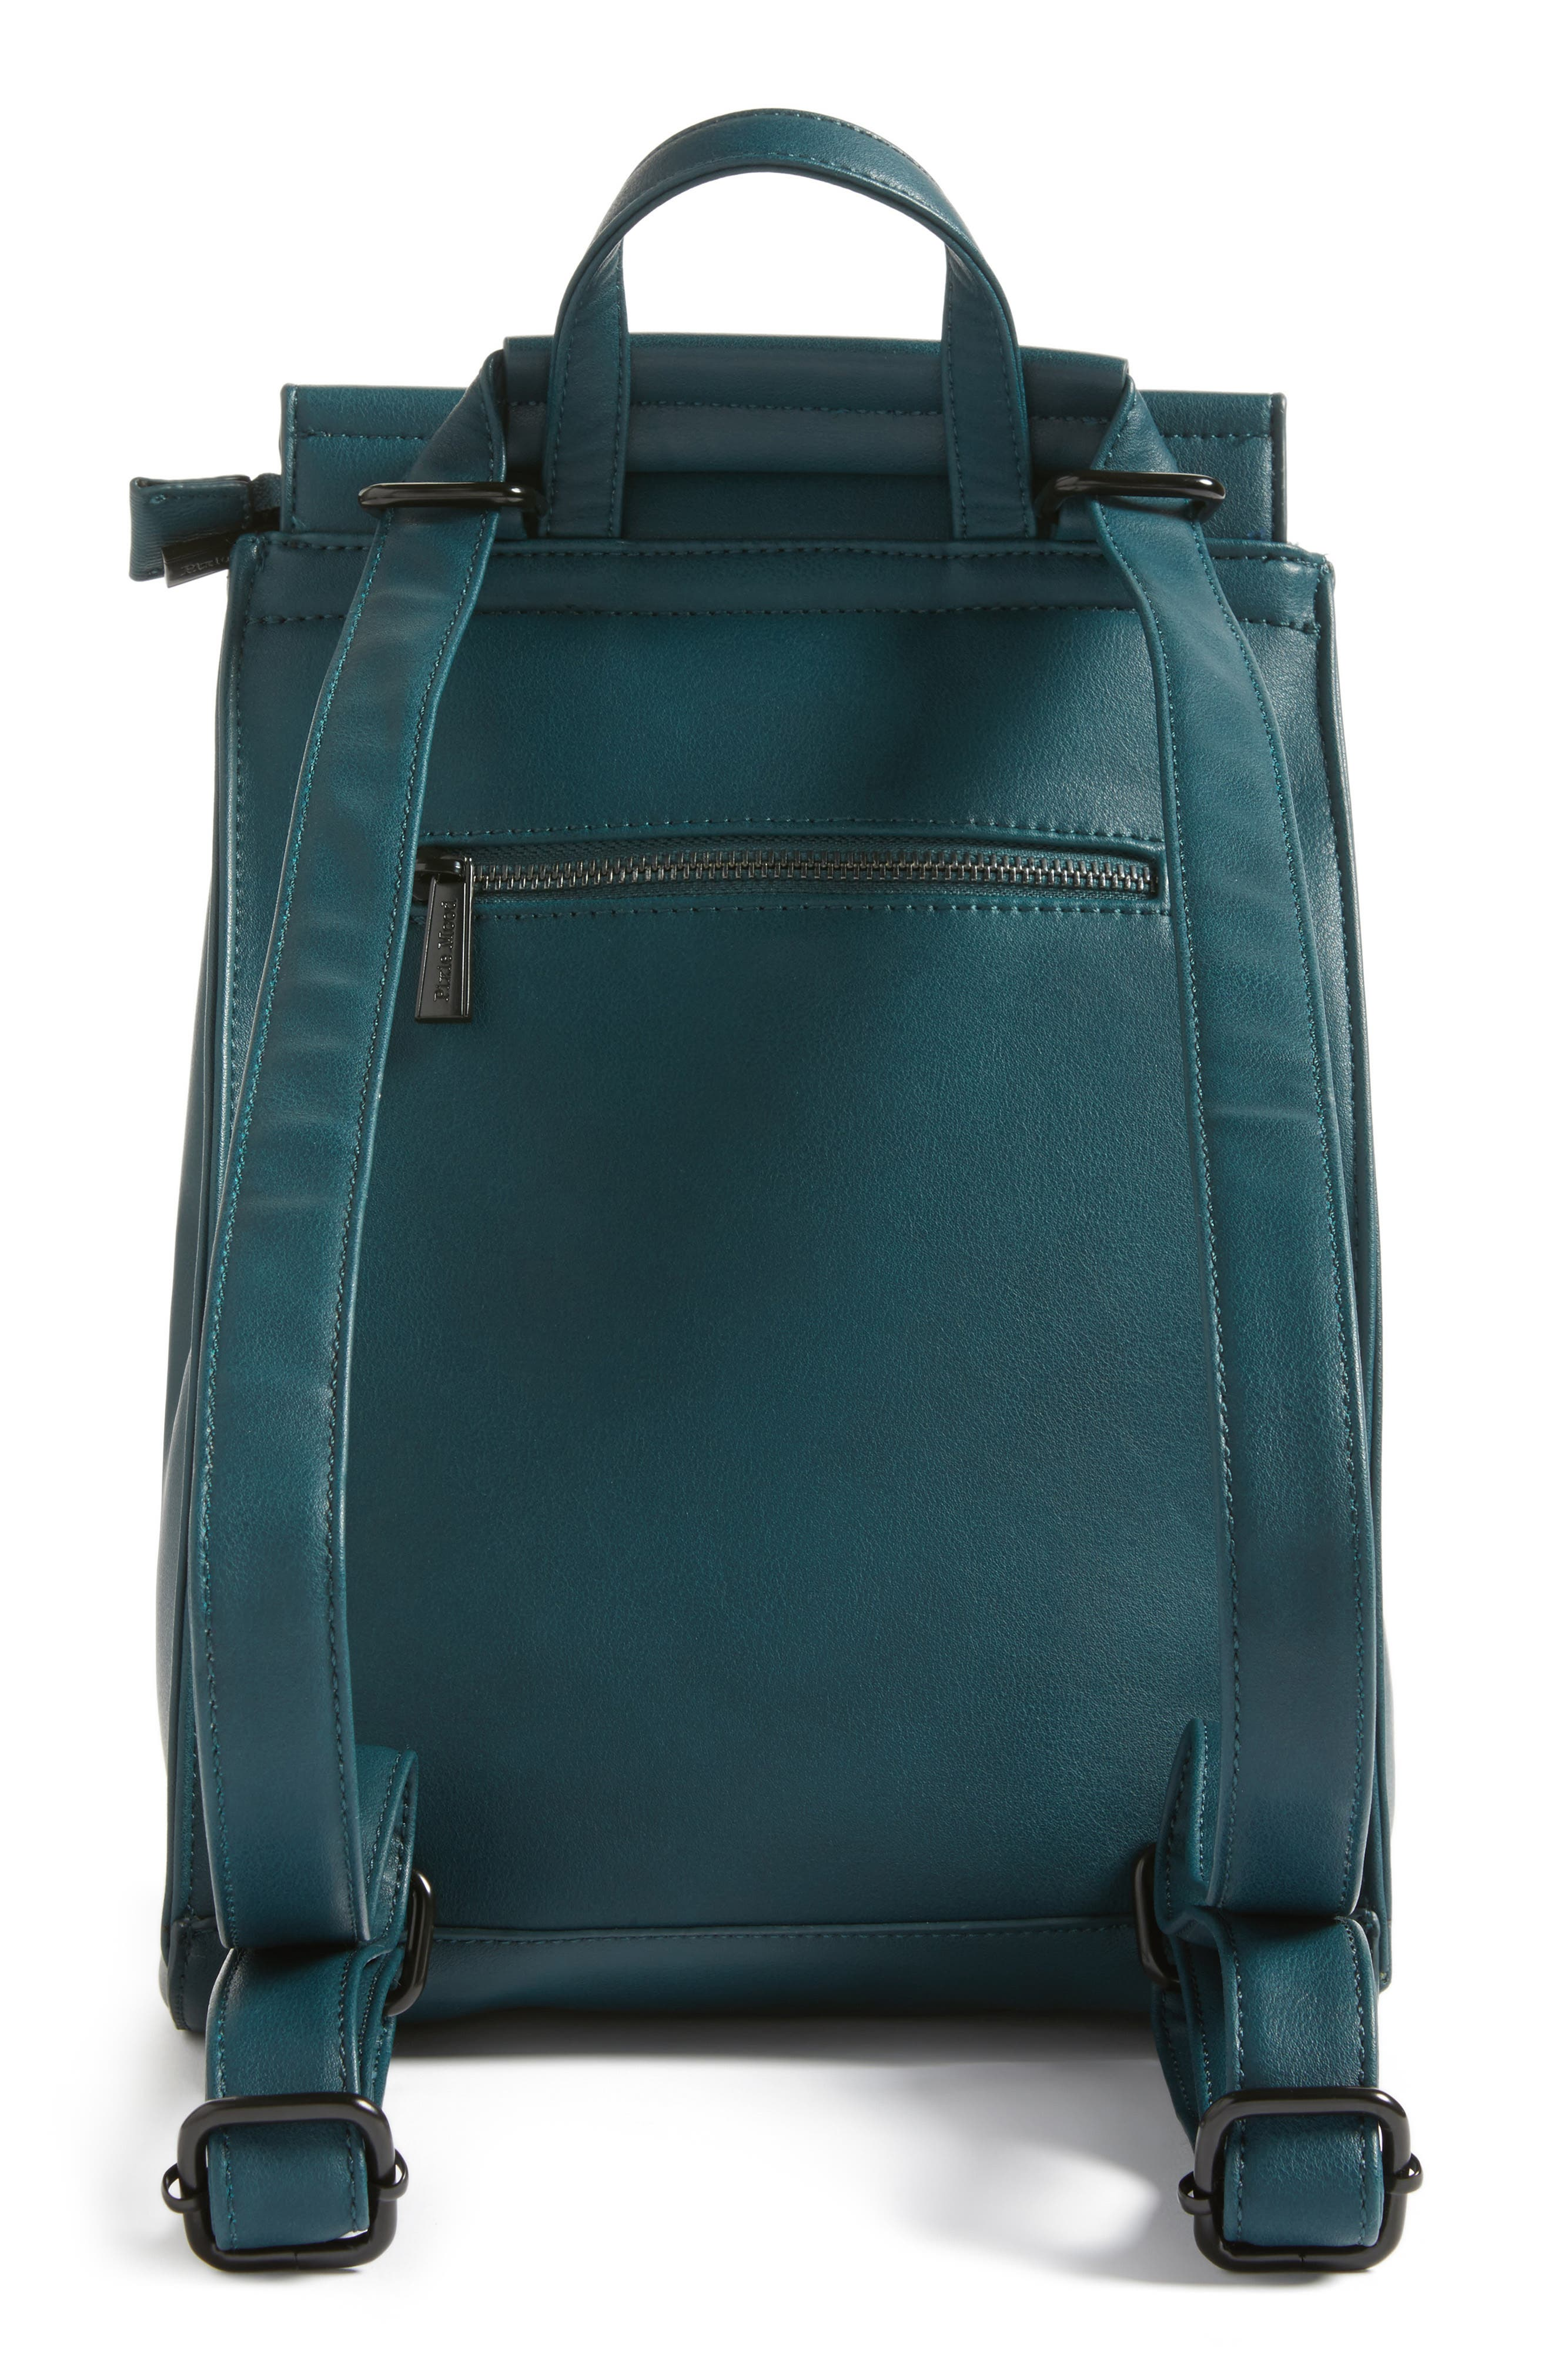 Kim Convertible Faux Leather Backpack,                             Alternate thumbnail 2, color,                             Green